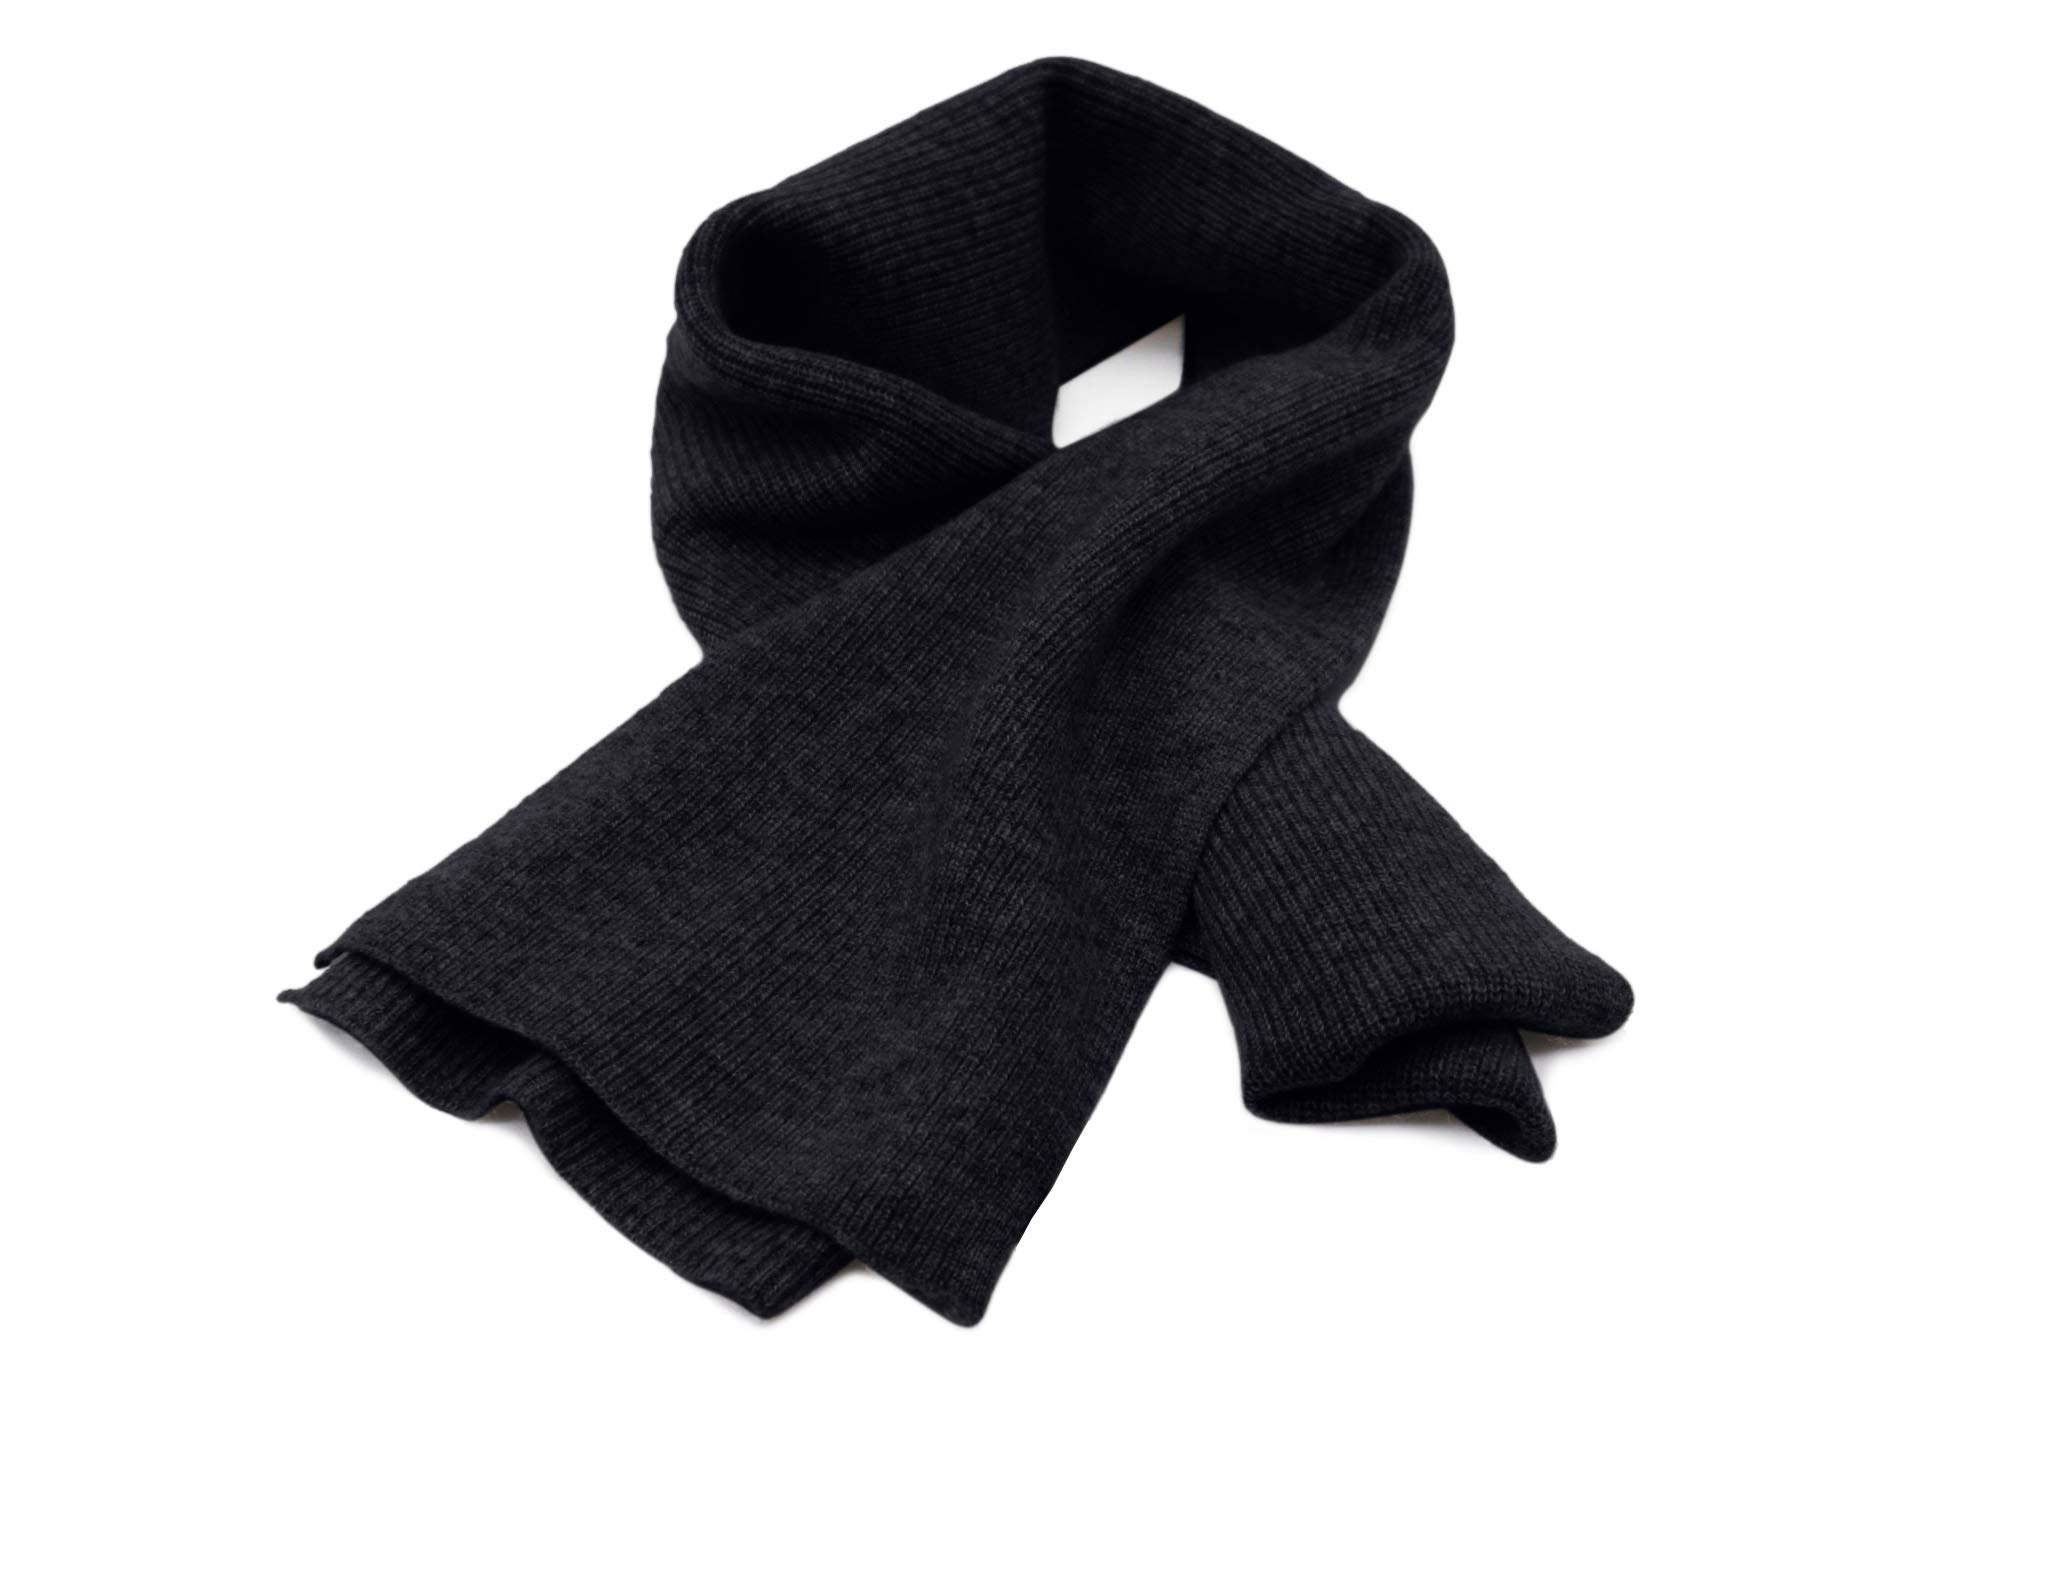 Details about  /State Cashmere Men/'s Classic Ribbed Solid Scarf 100/% Pure Cashmere Ultra Soft Wi